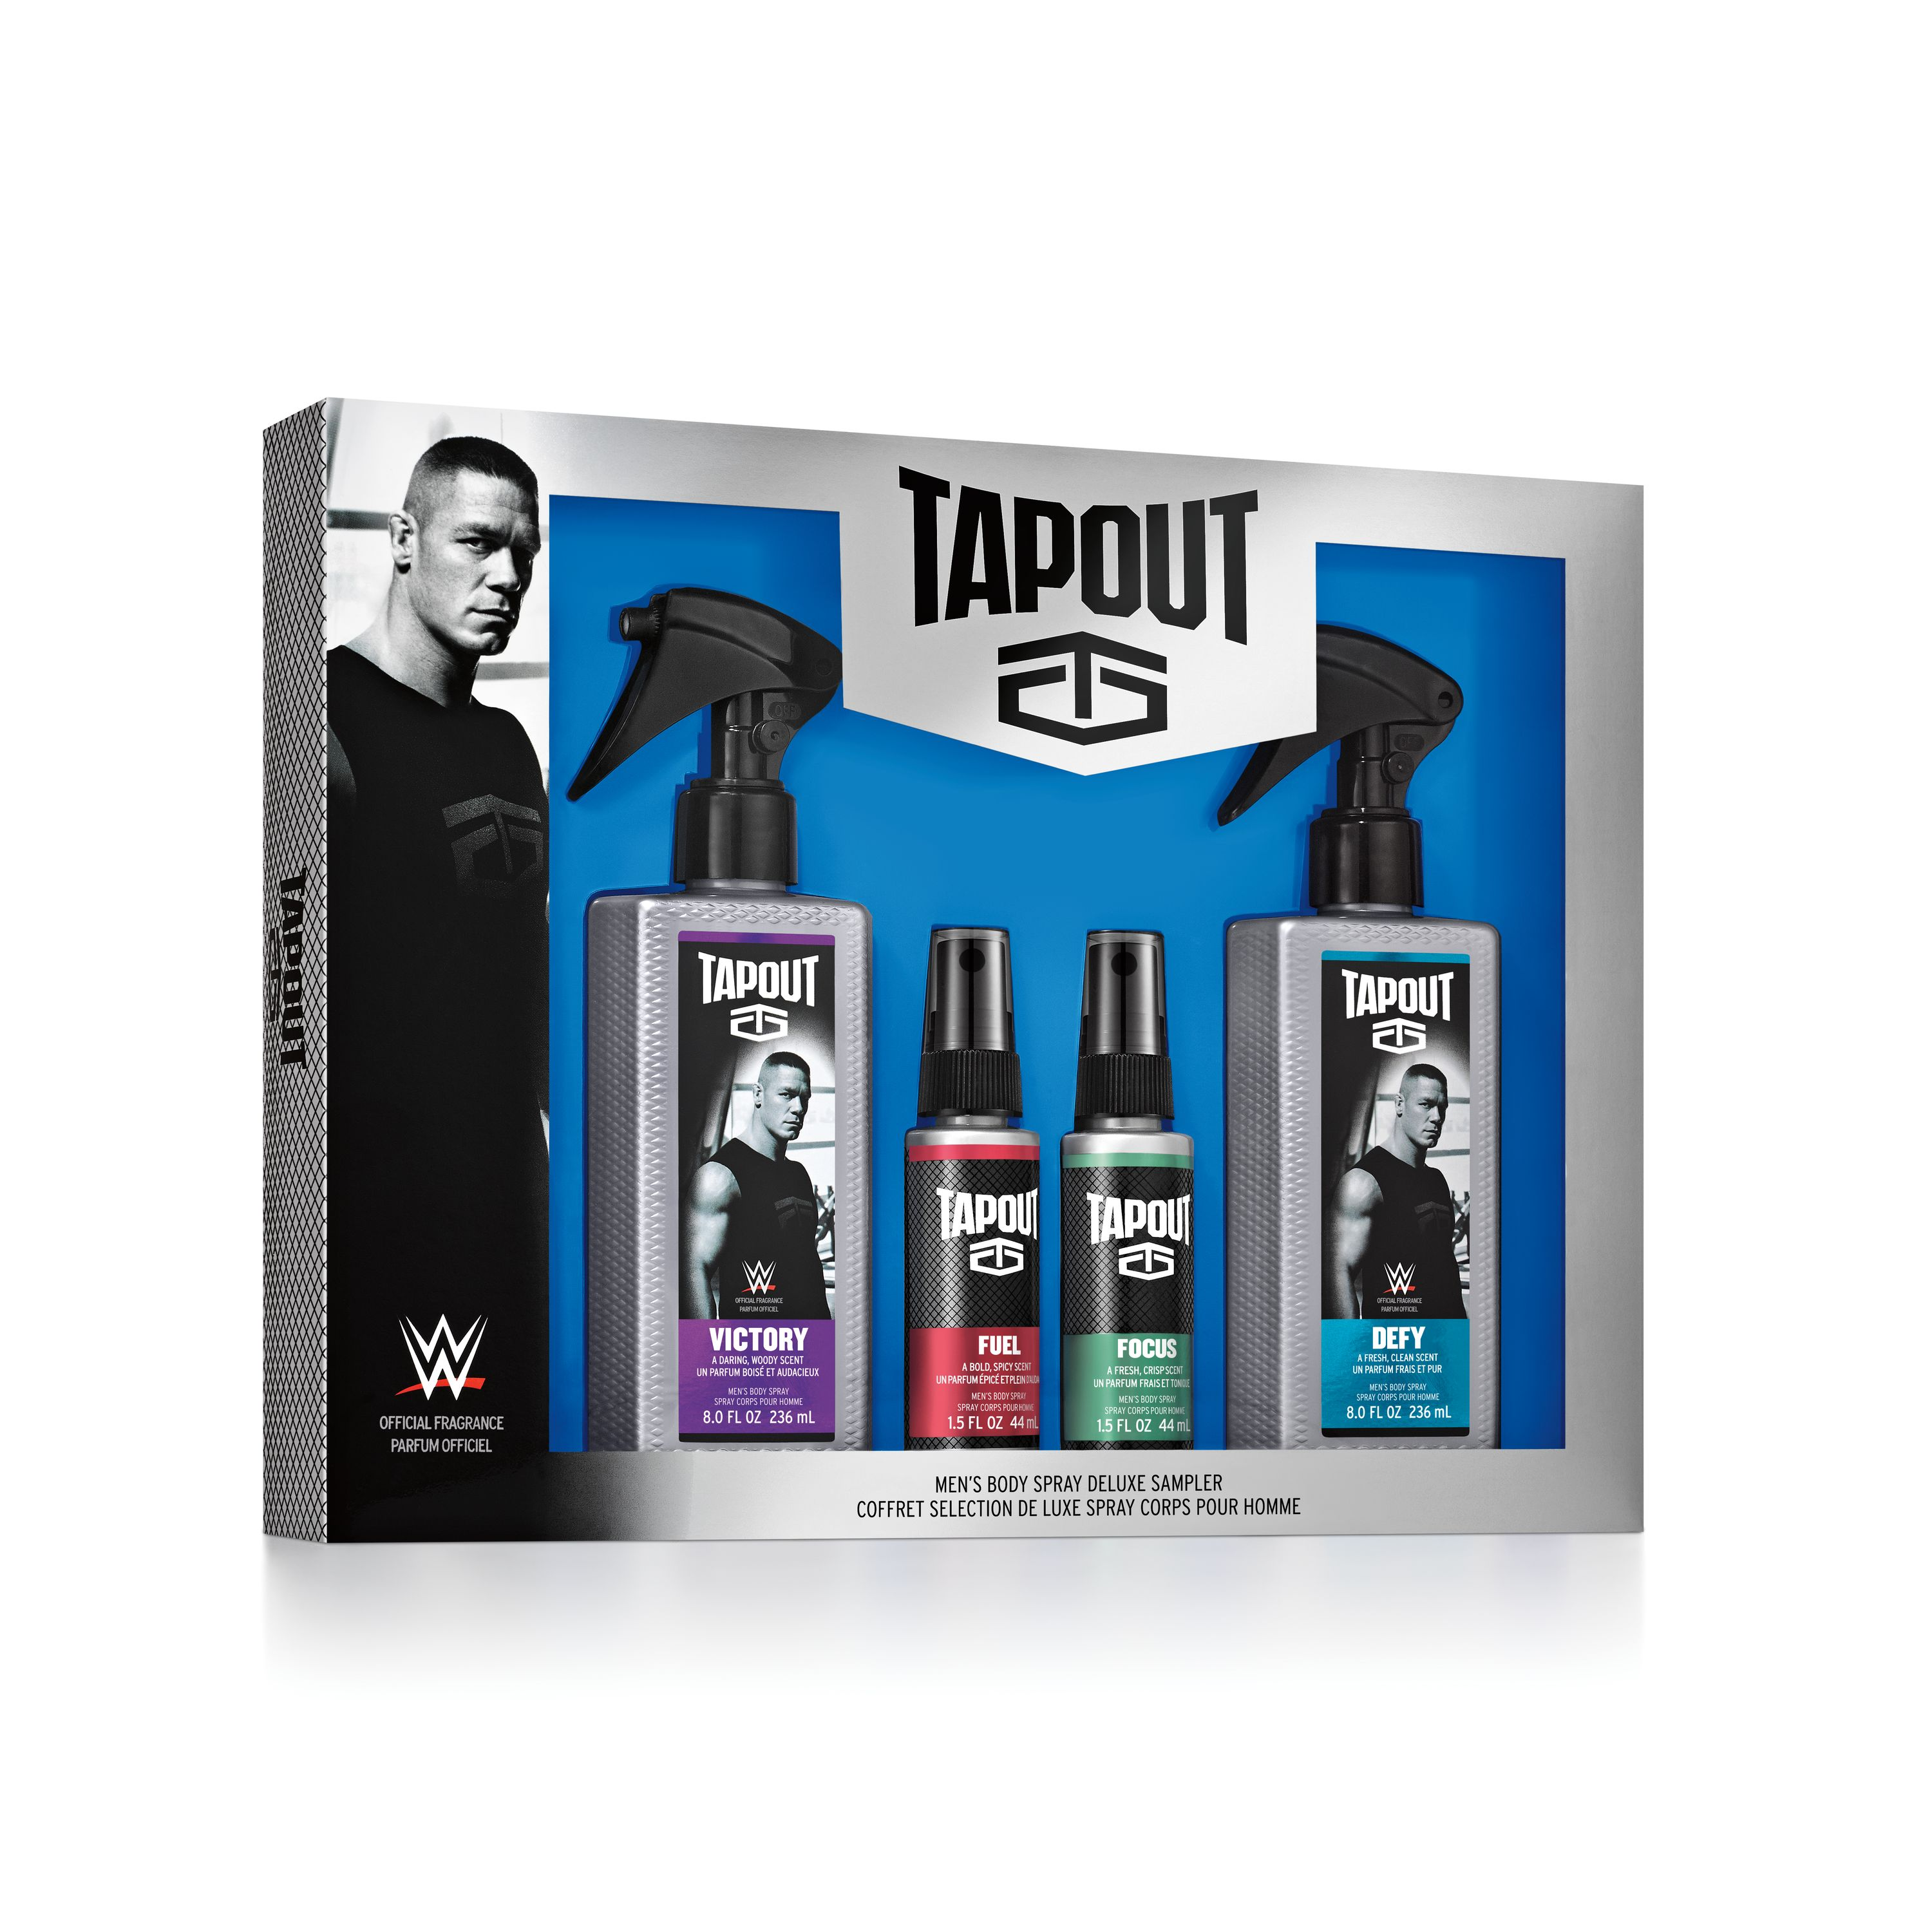 Tapout Fragrance Body Spray Collection for Men, 4 pc